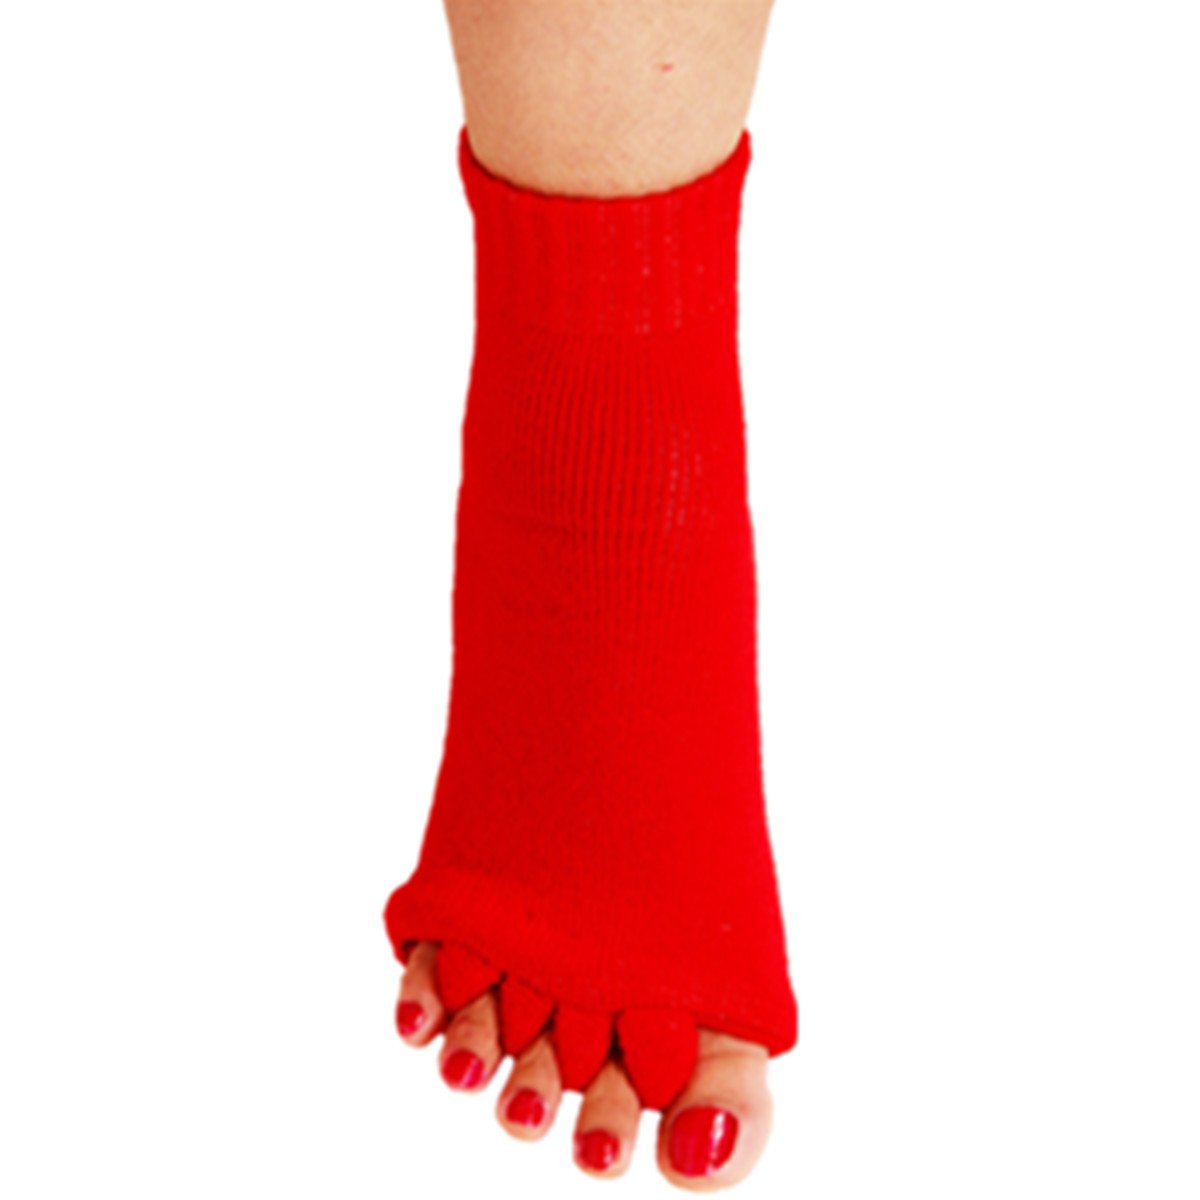 1 Pair Yoga GYM Massage Five Toe Separator Socks Foot Alignment Pain Relief Hot (One Size, A-Red)